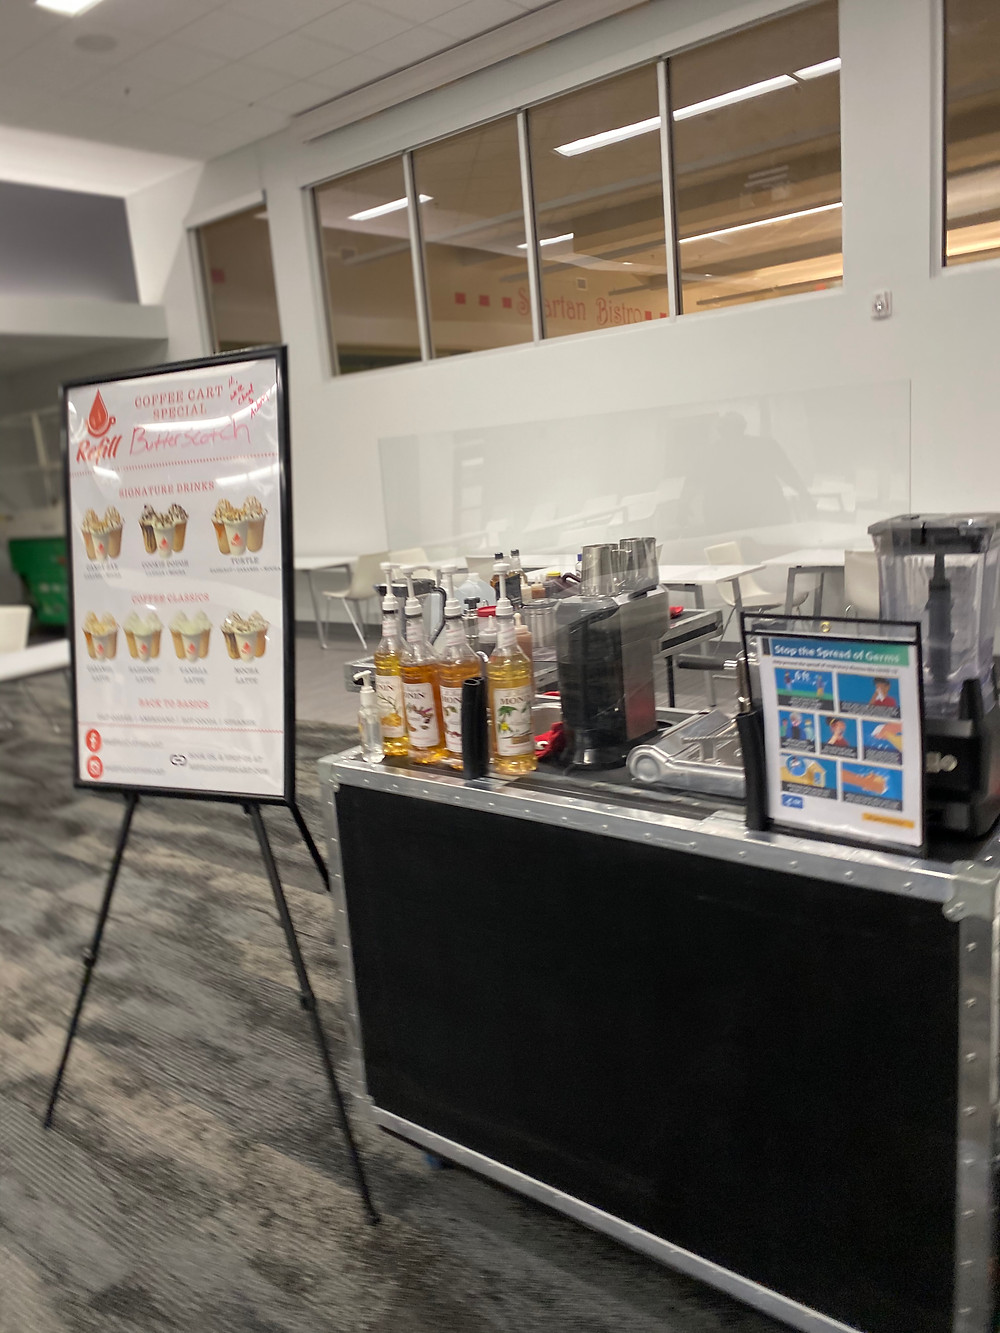 Refill Coffee Cart at Webb School of Knoxville